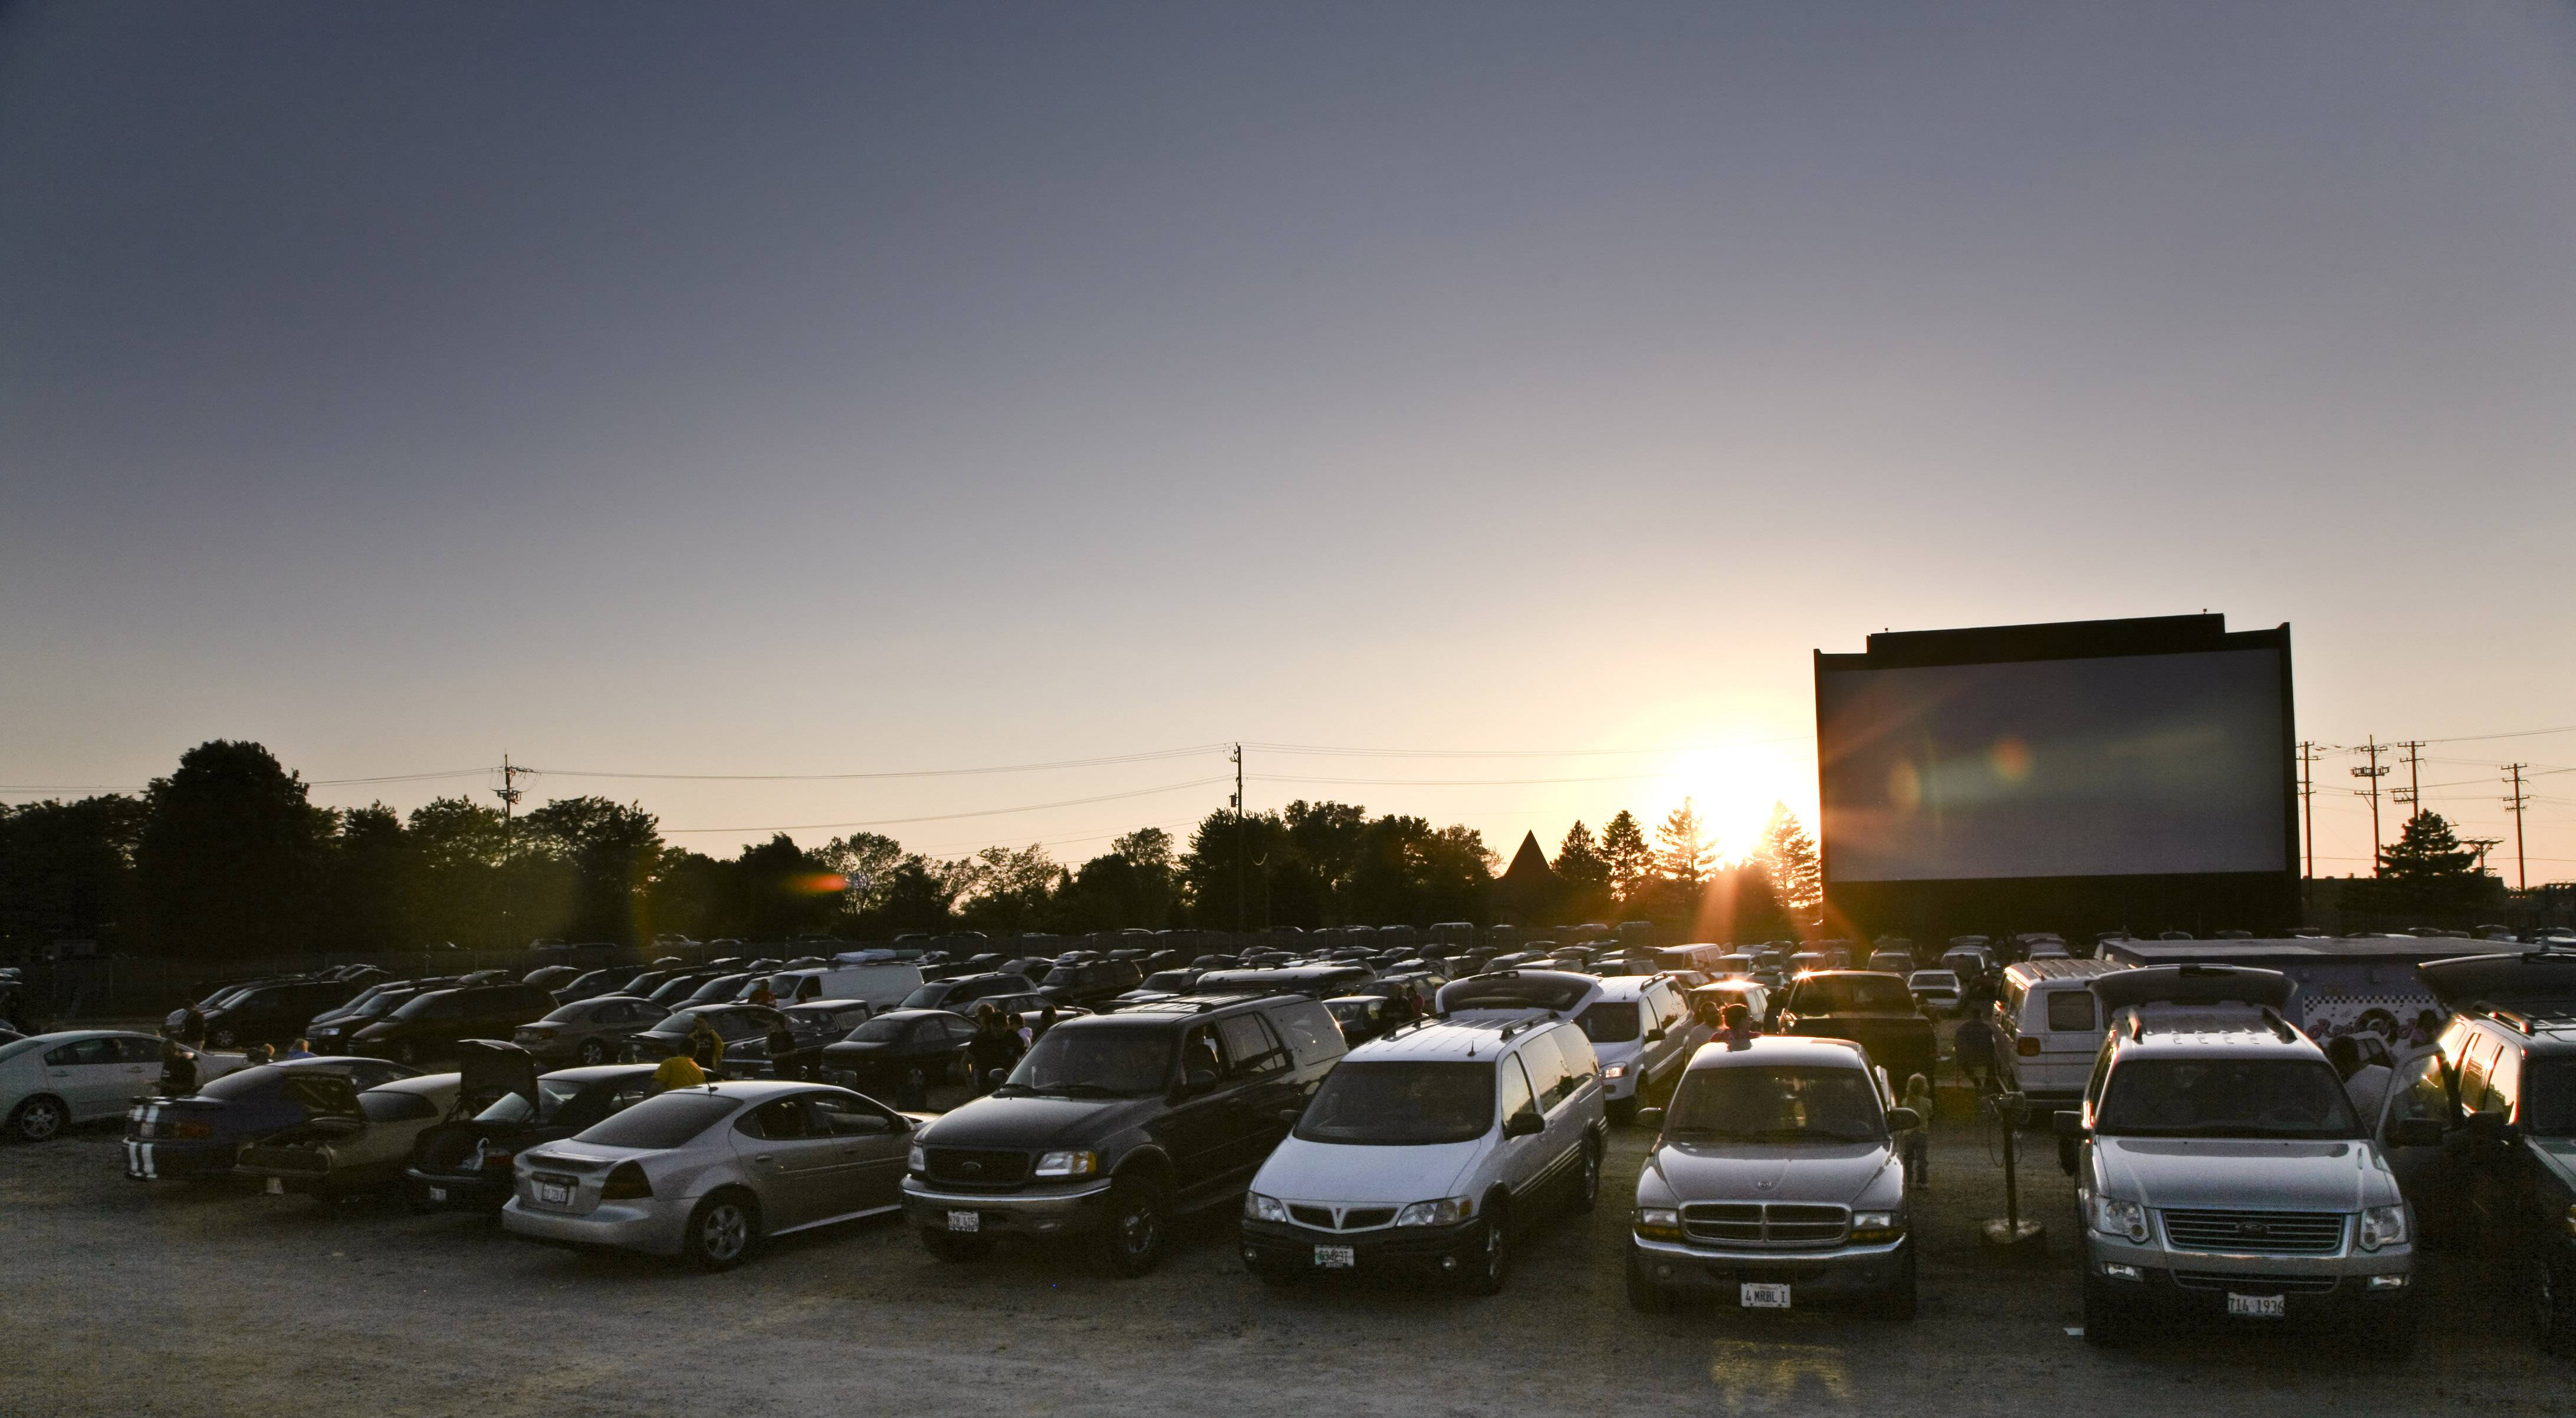 The McHenry Drive-In is one of the few remaining drive-ins in Illinois